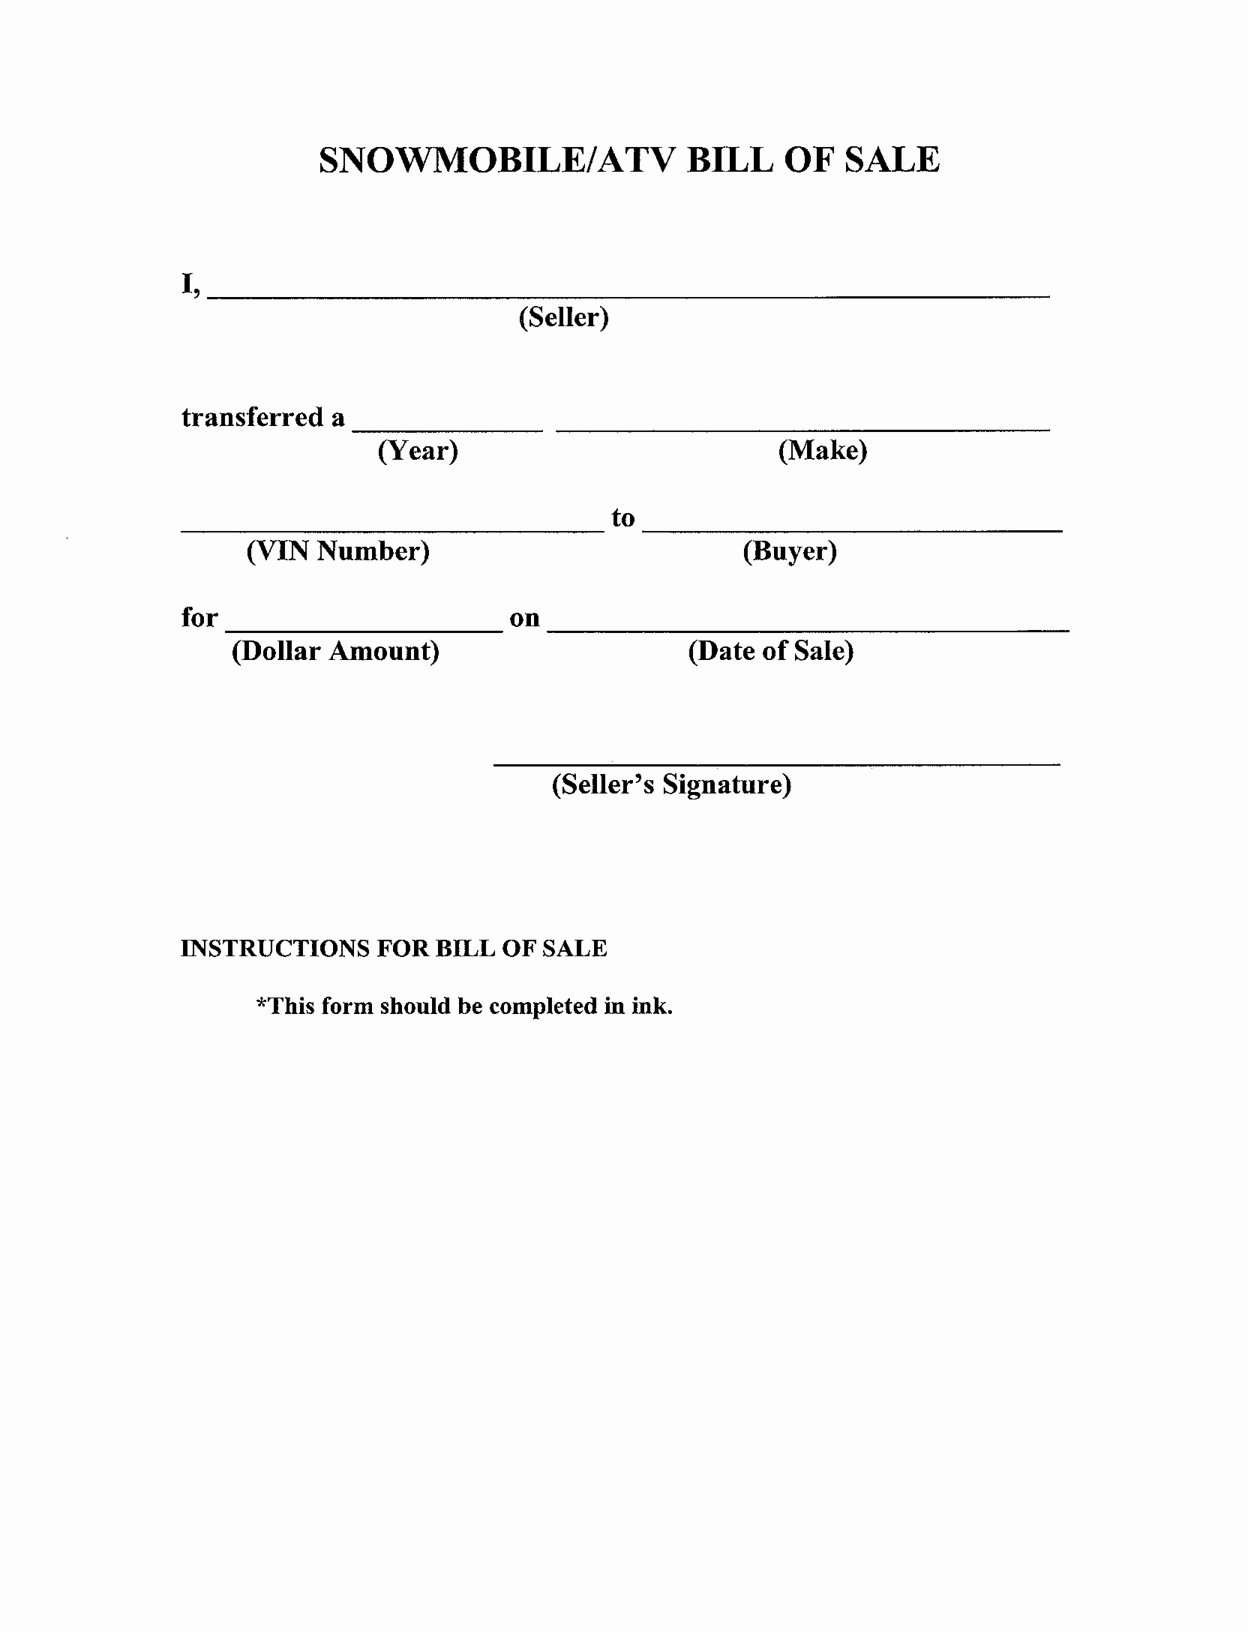 Simple Auto Bill Of Sale Awesome Free Printable Bill Of Sale Templates form Generic